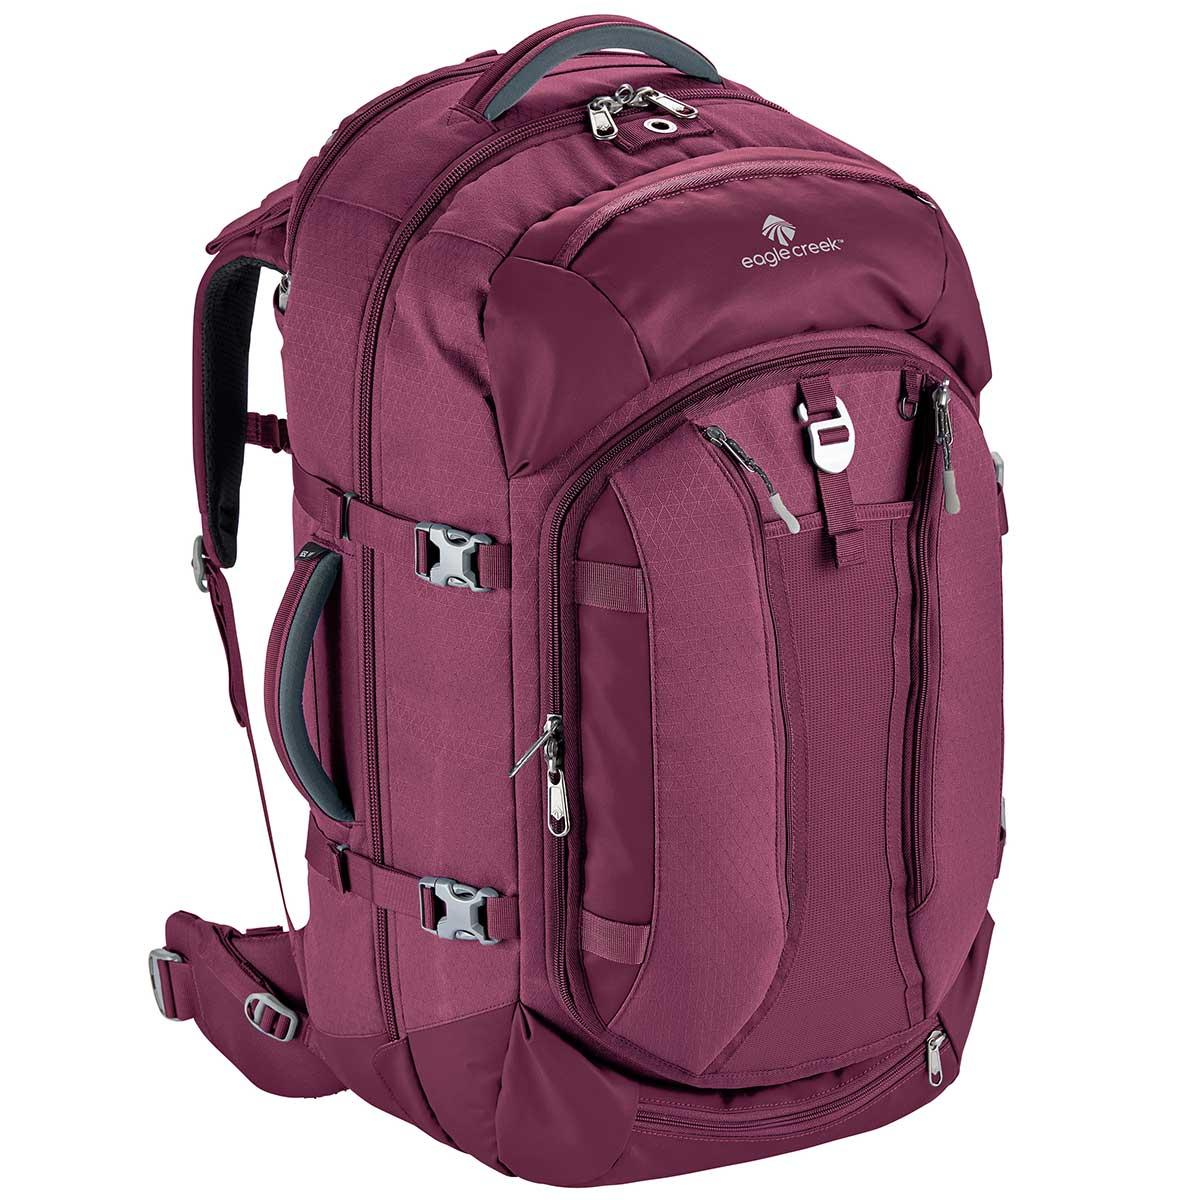 Eagle Creek Global Companion 65L Women's Backpack in Concord